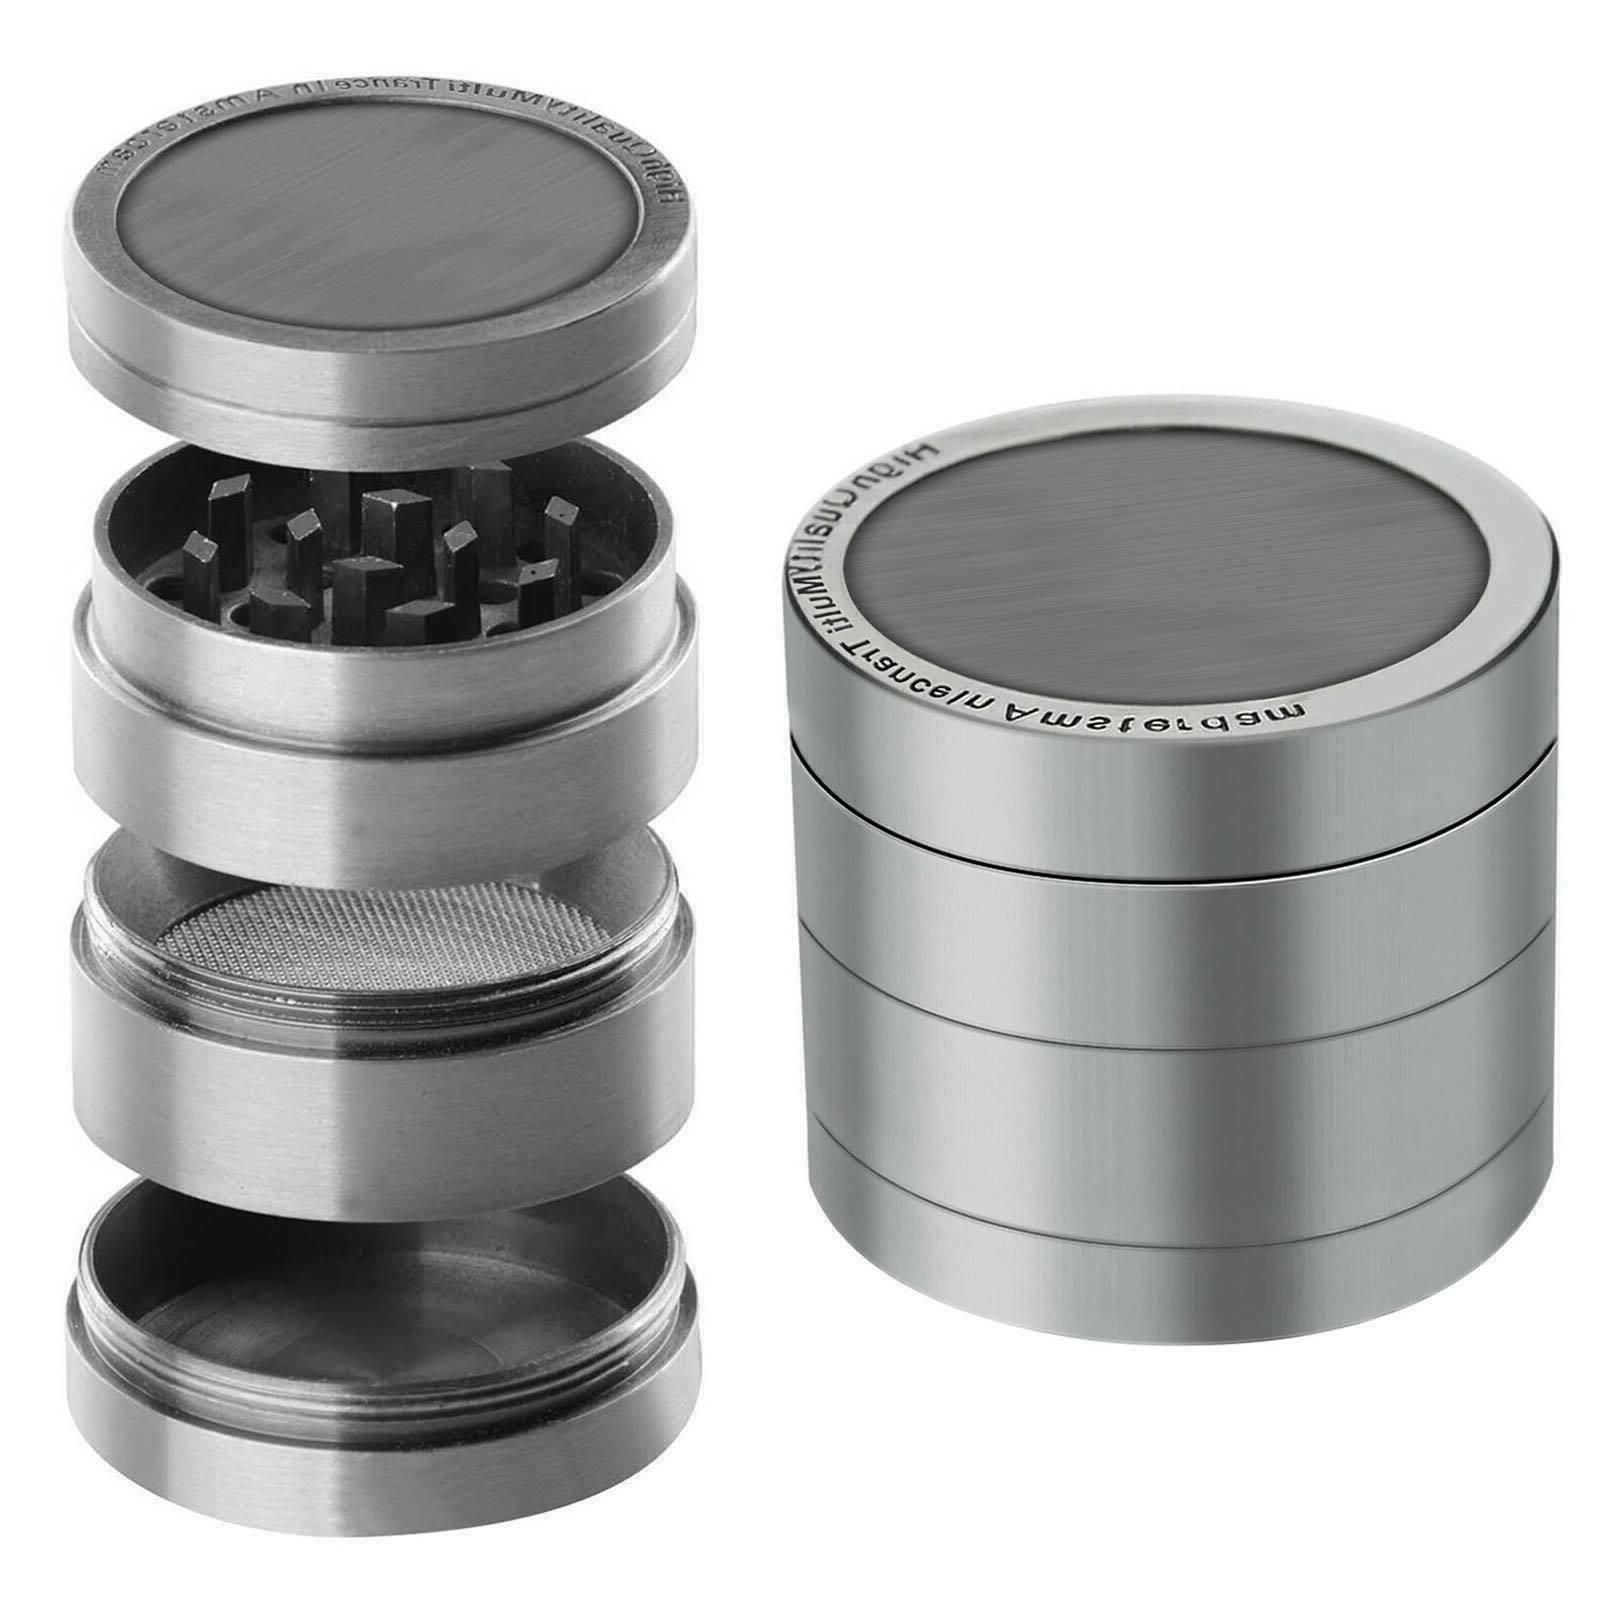 Tobacco Grinder Spice Herbal Alloy